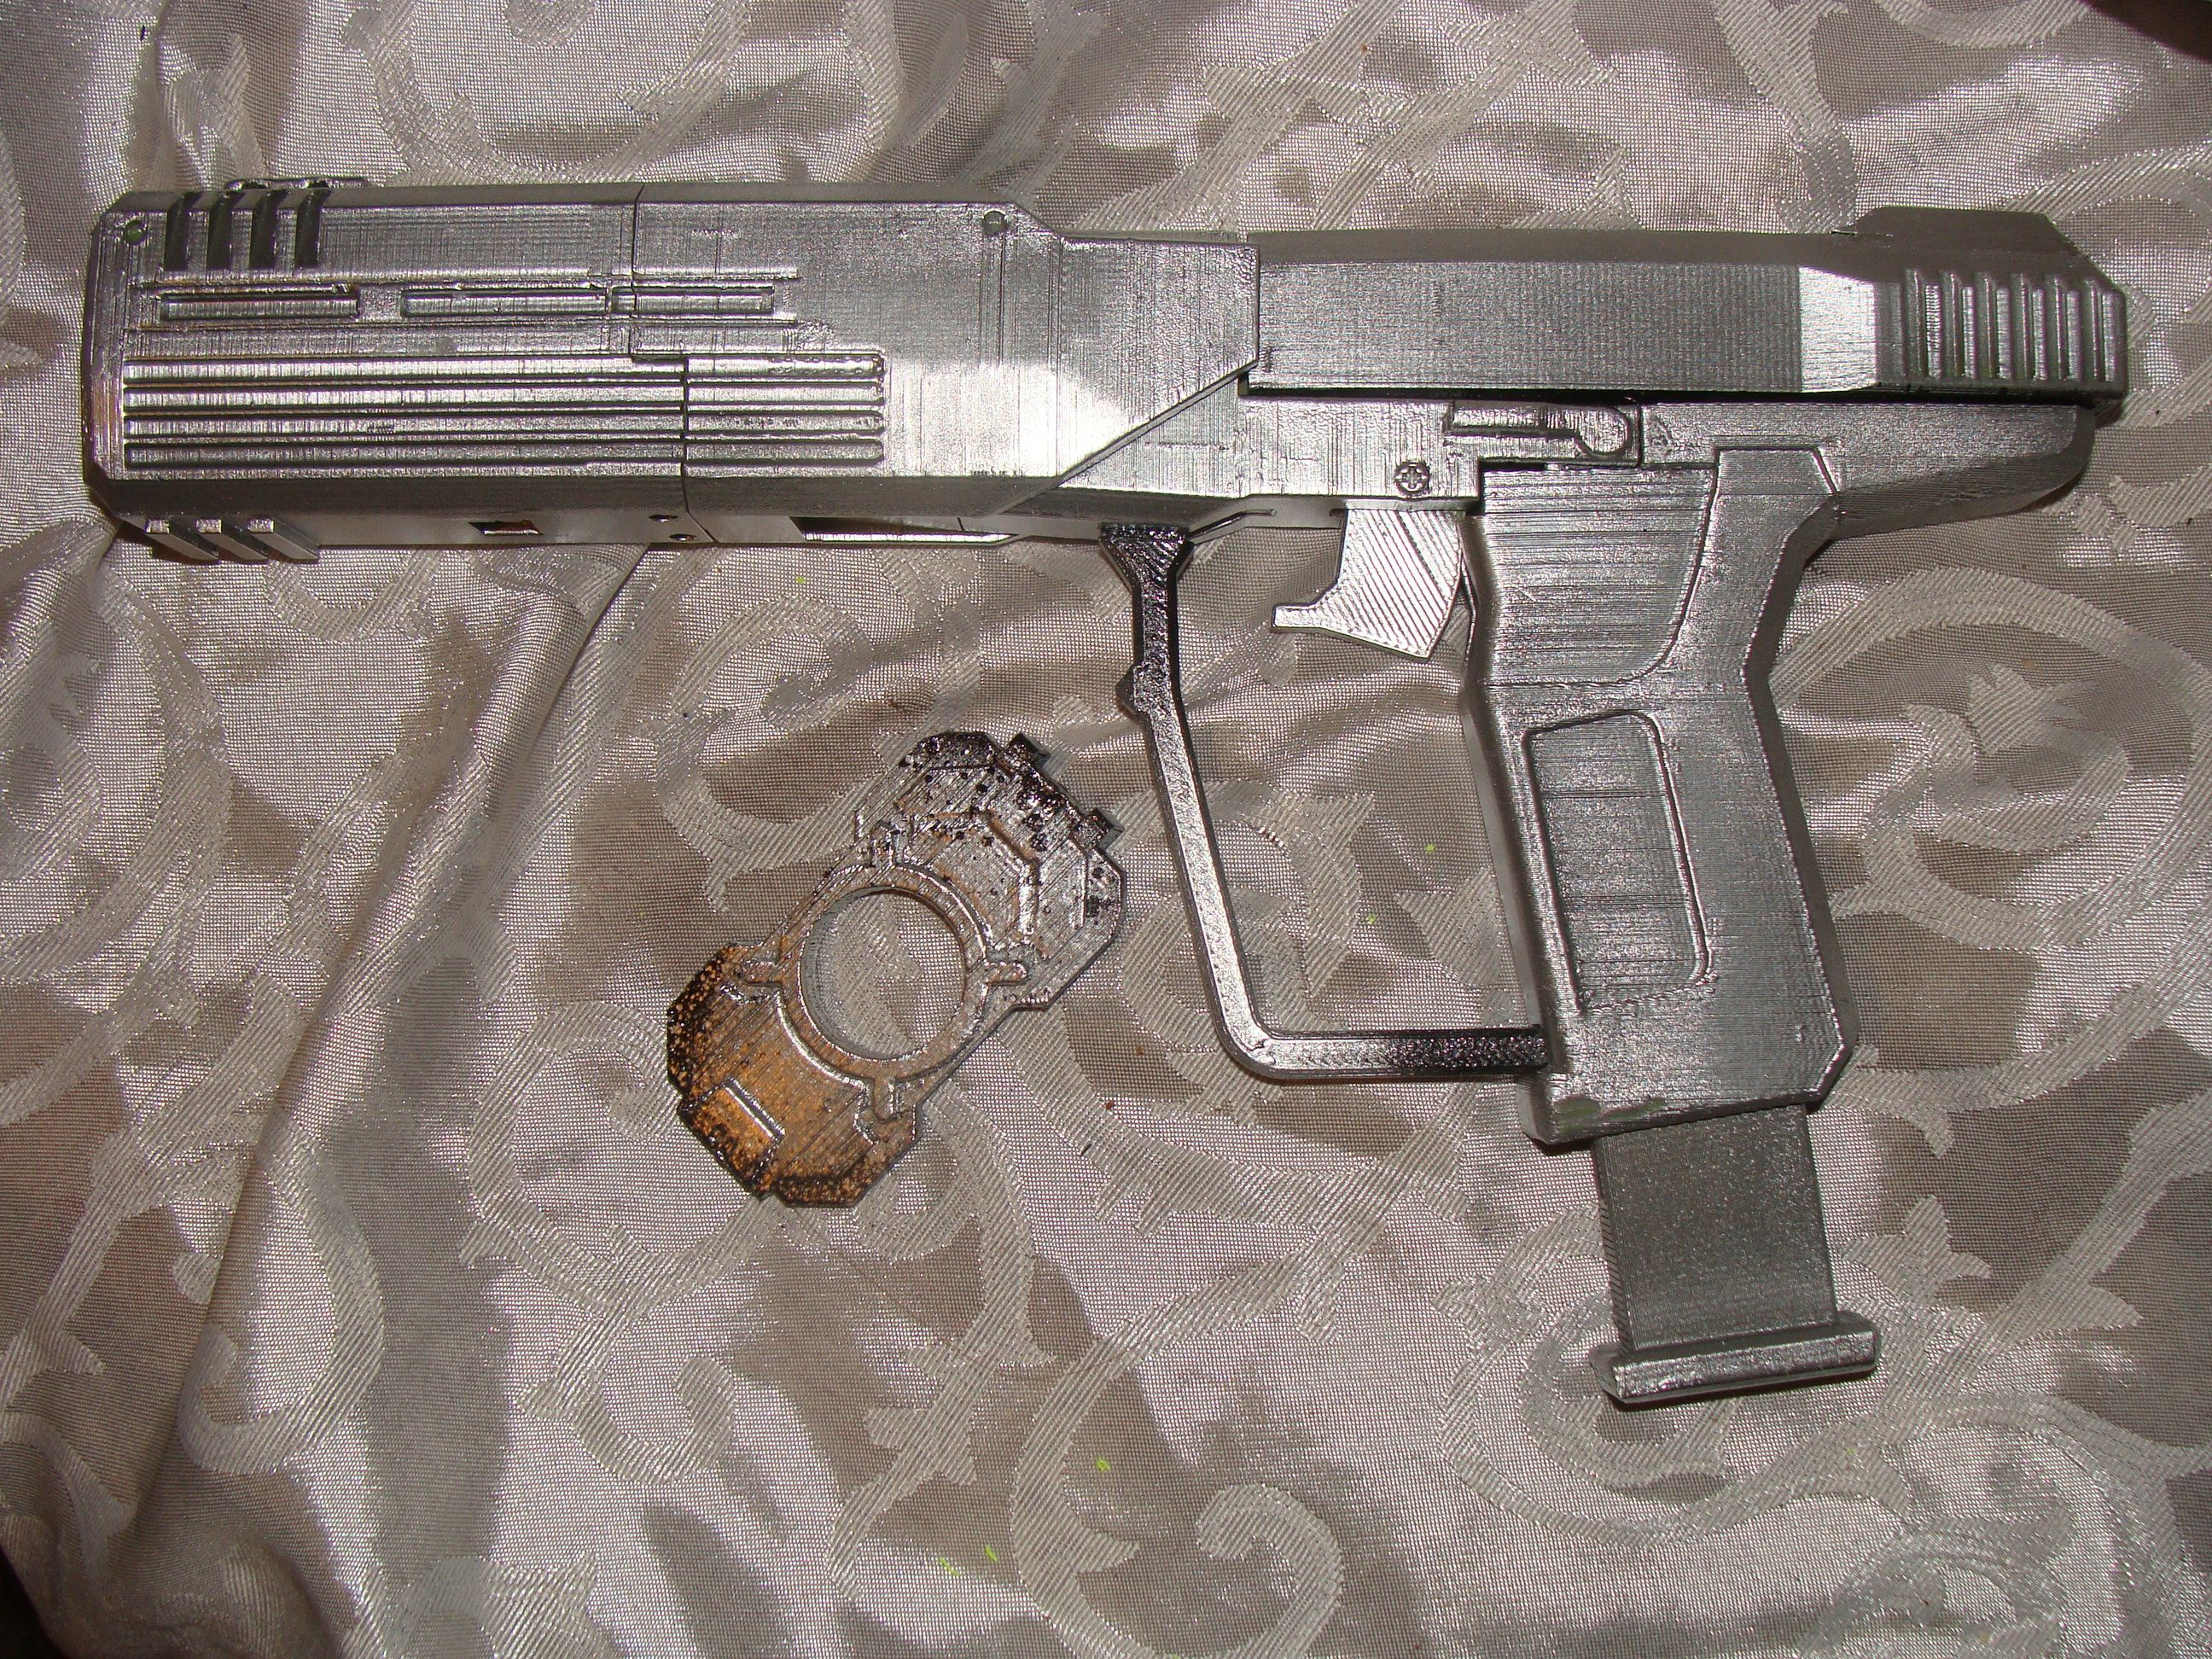 Color printing el paso tx - Print Odst Silencer Halo Magnum Pistol Gun Life Size Cosplay Toy Prop Nerf By Dusty Plastics In El Paso Tx Painted By Leslie S Chance Toys